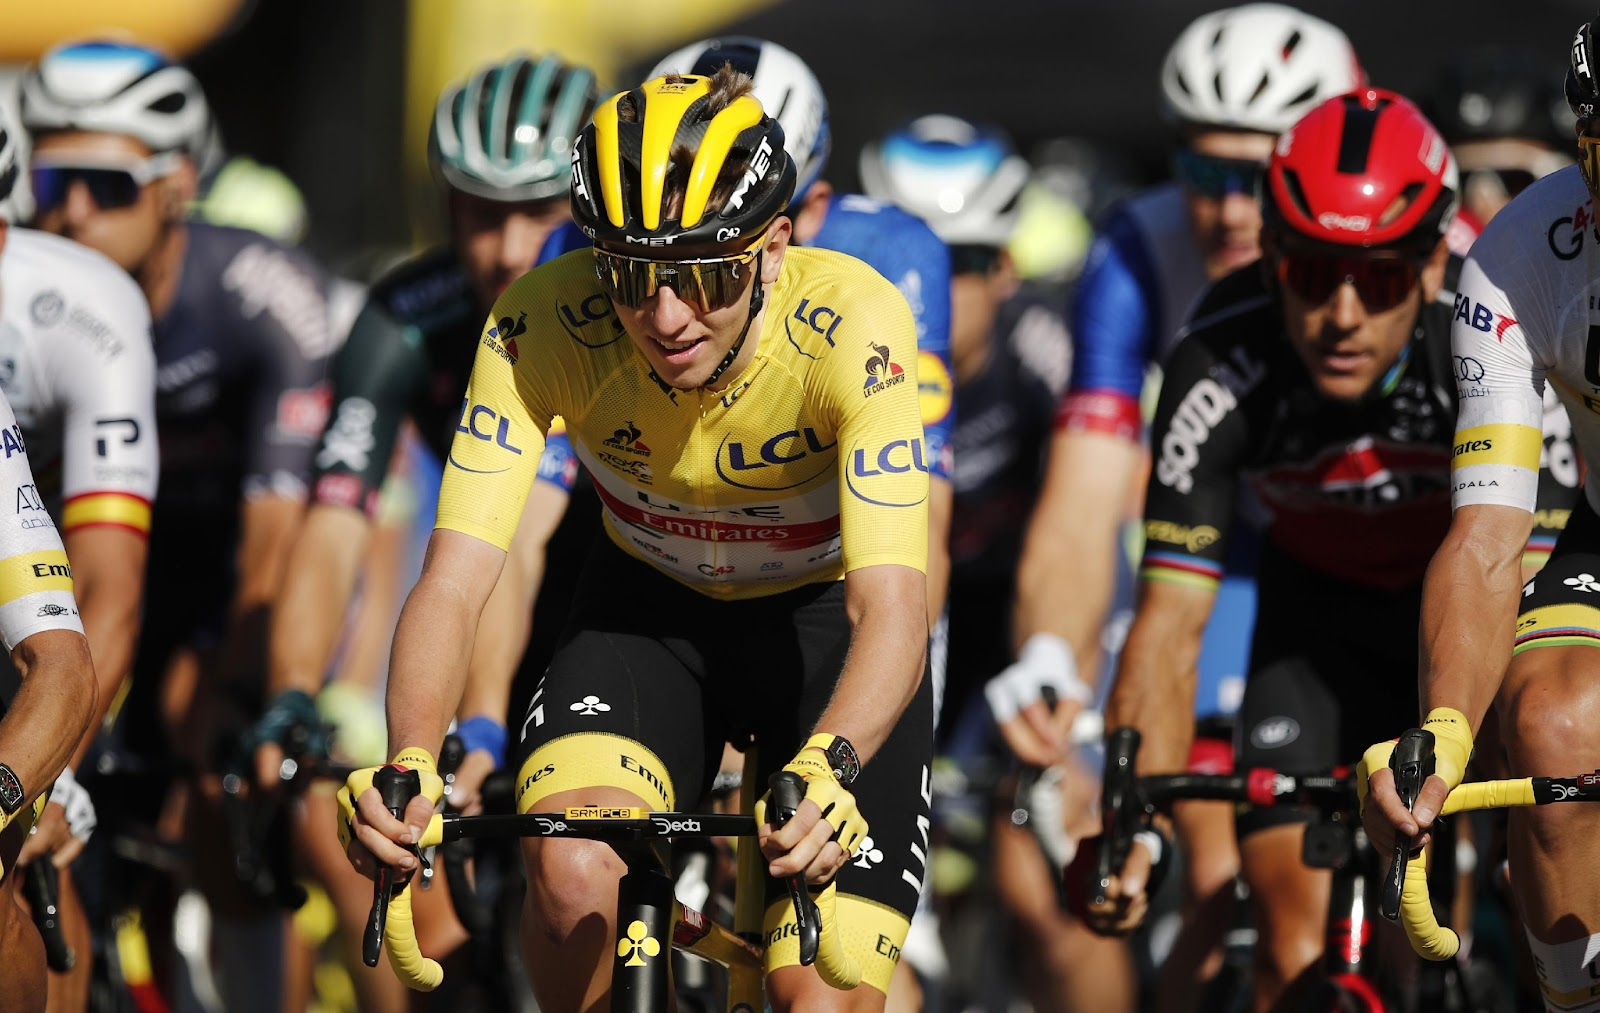 Cycling - Tour de France - Stage 21 - Chatou to Paris Champs-Elysees - France - July 18, 2021 UAE Team Emirates rider Tadej Pogacar of Slovenia wearing the yellow jersey in action during stage 21 Pool via REUTERS/Benoit Tessier